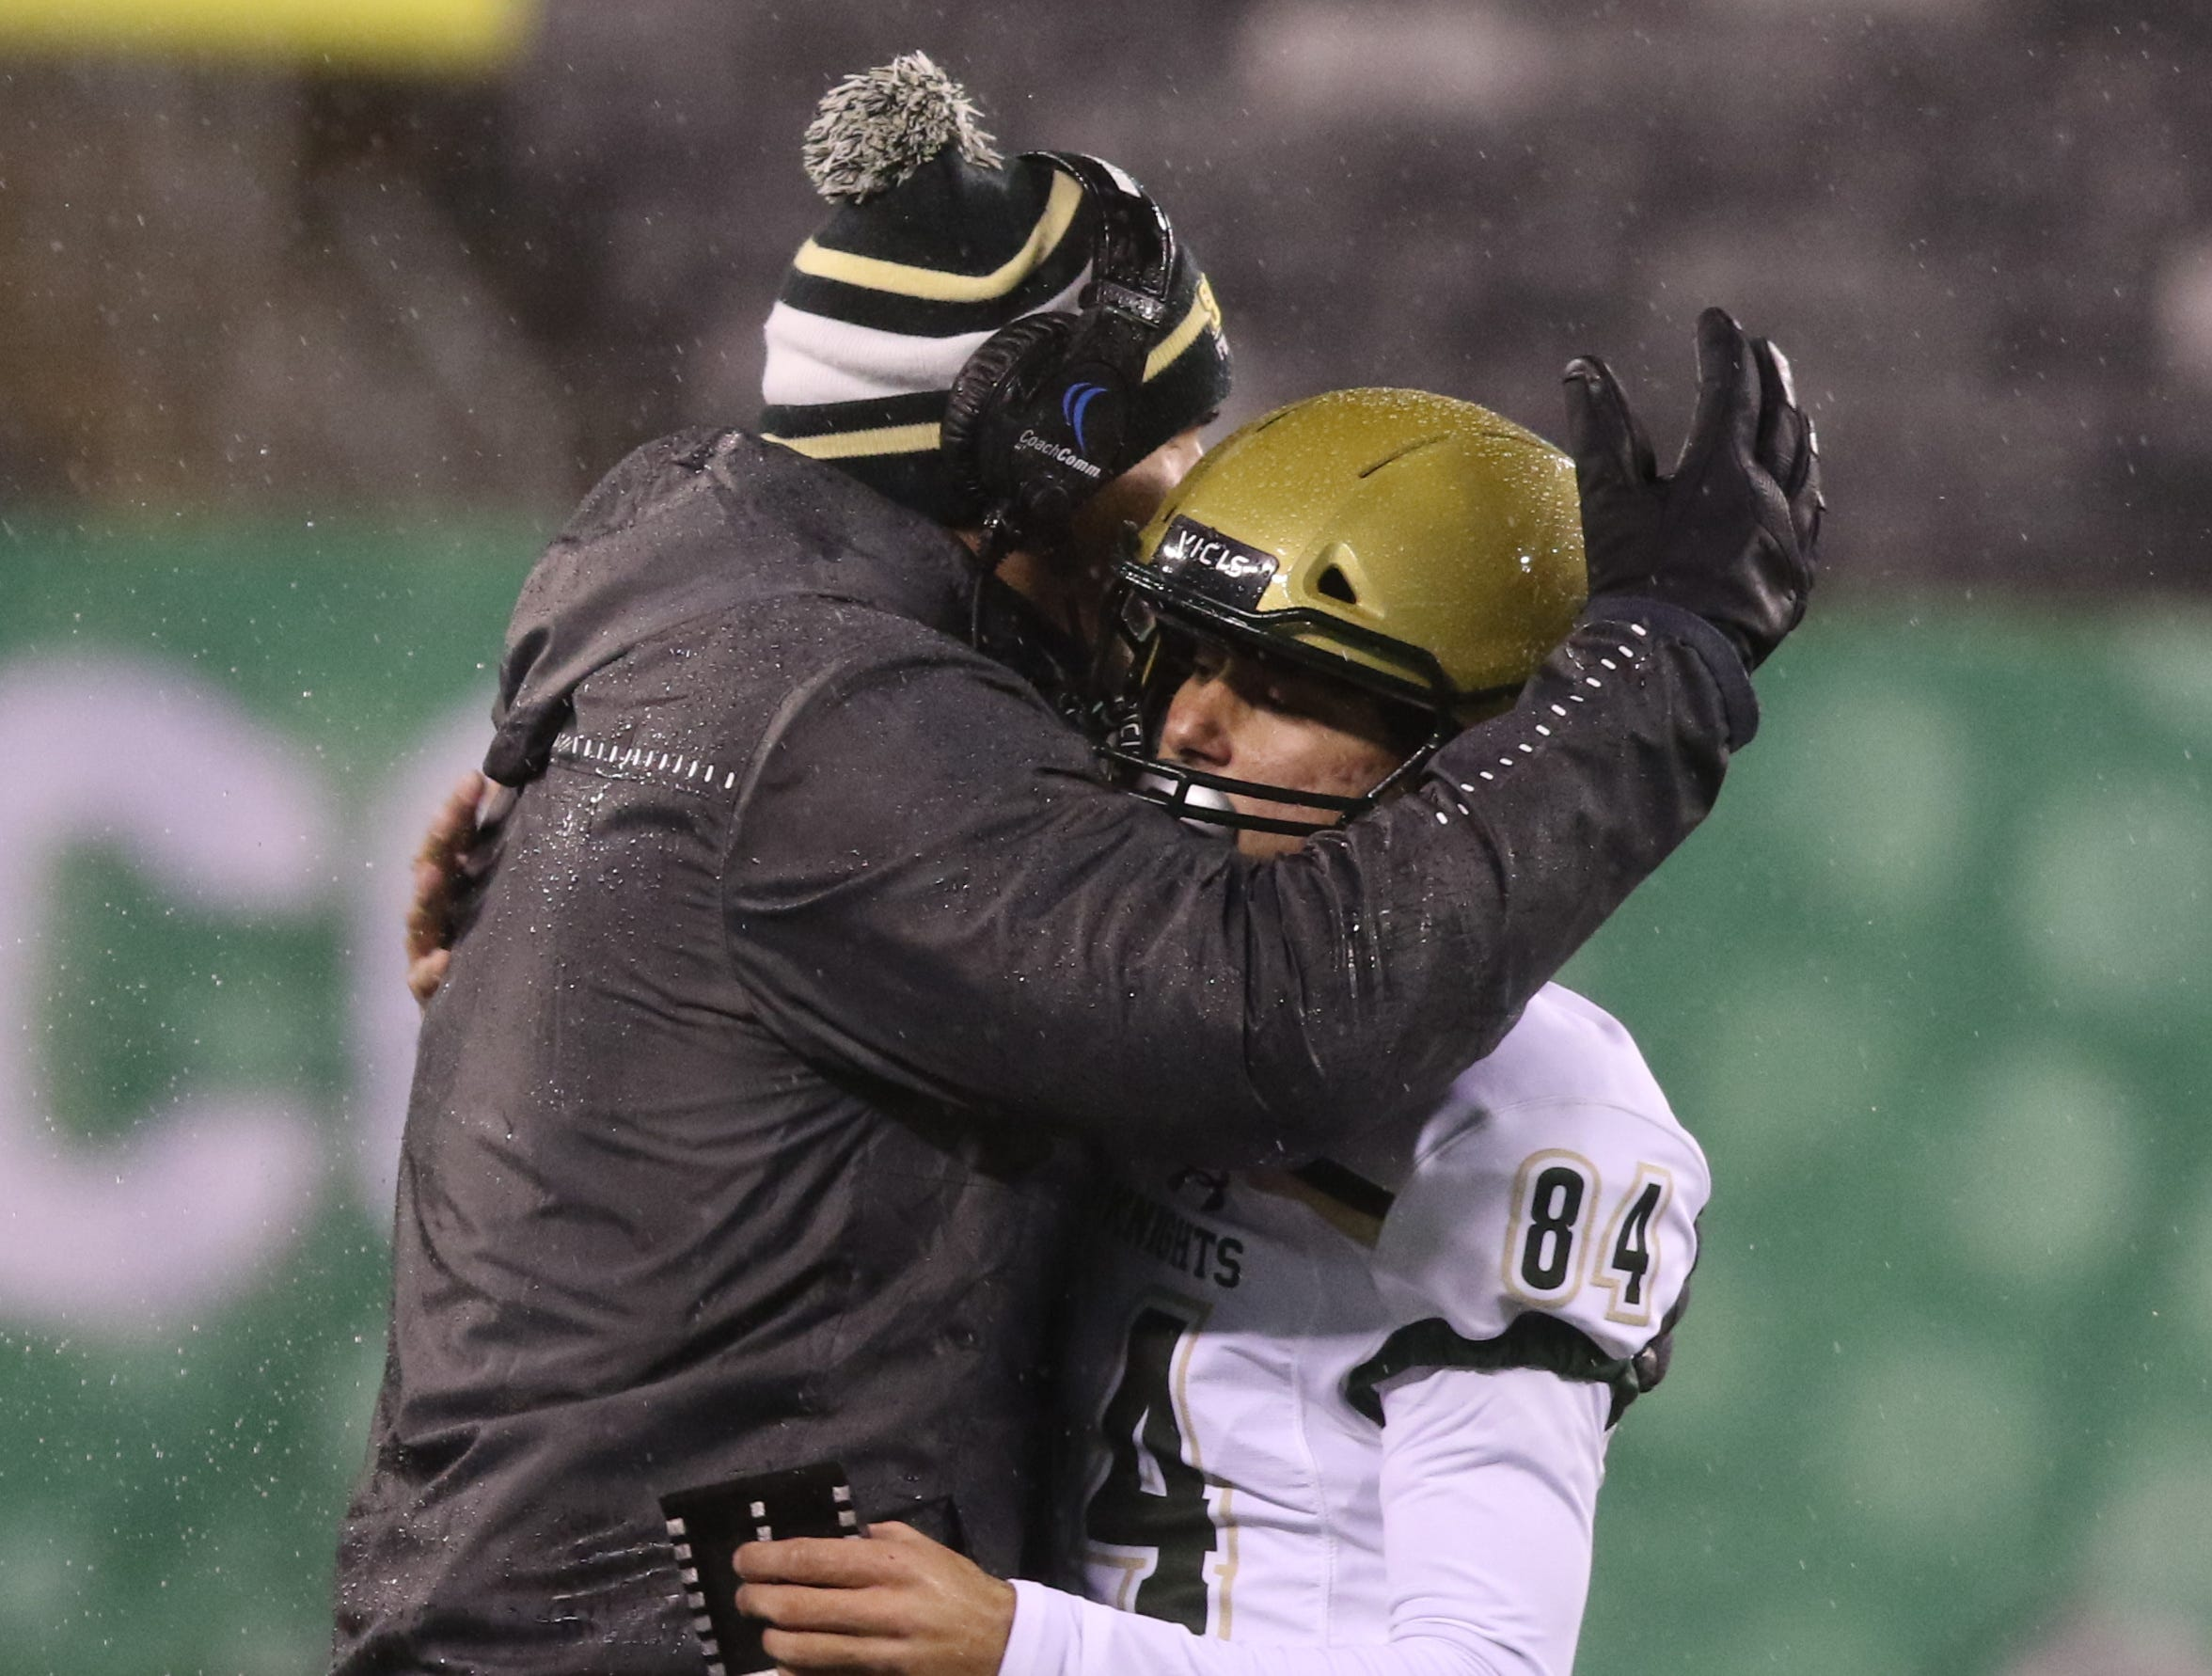 St. Joseph coach Augie Hoffmann with kicker Angelo Guglielmello of St.Joseph after he hit the extra point that broke the state career kicking points record.